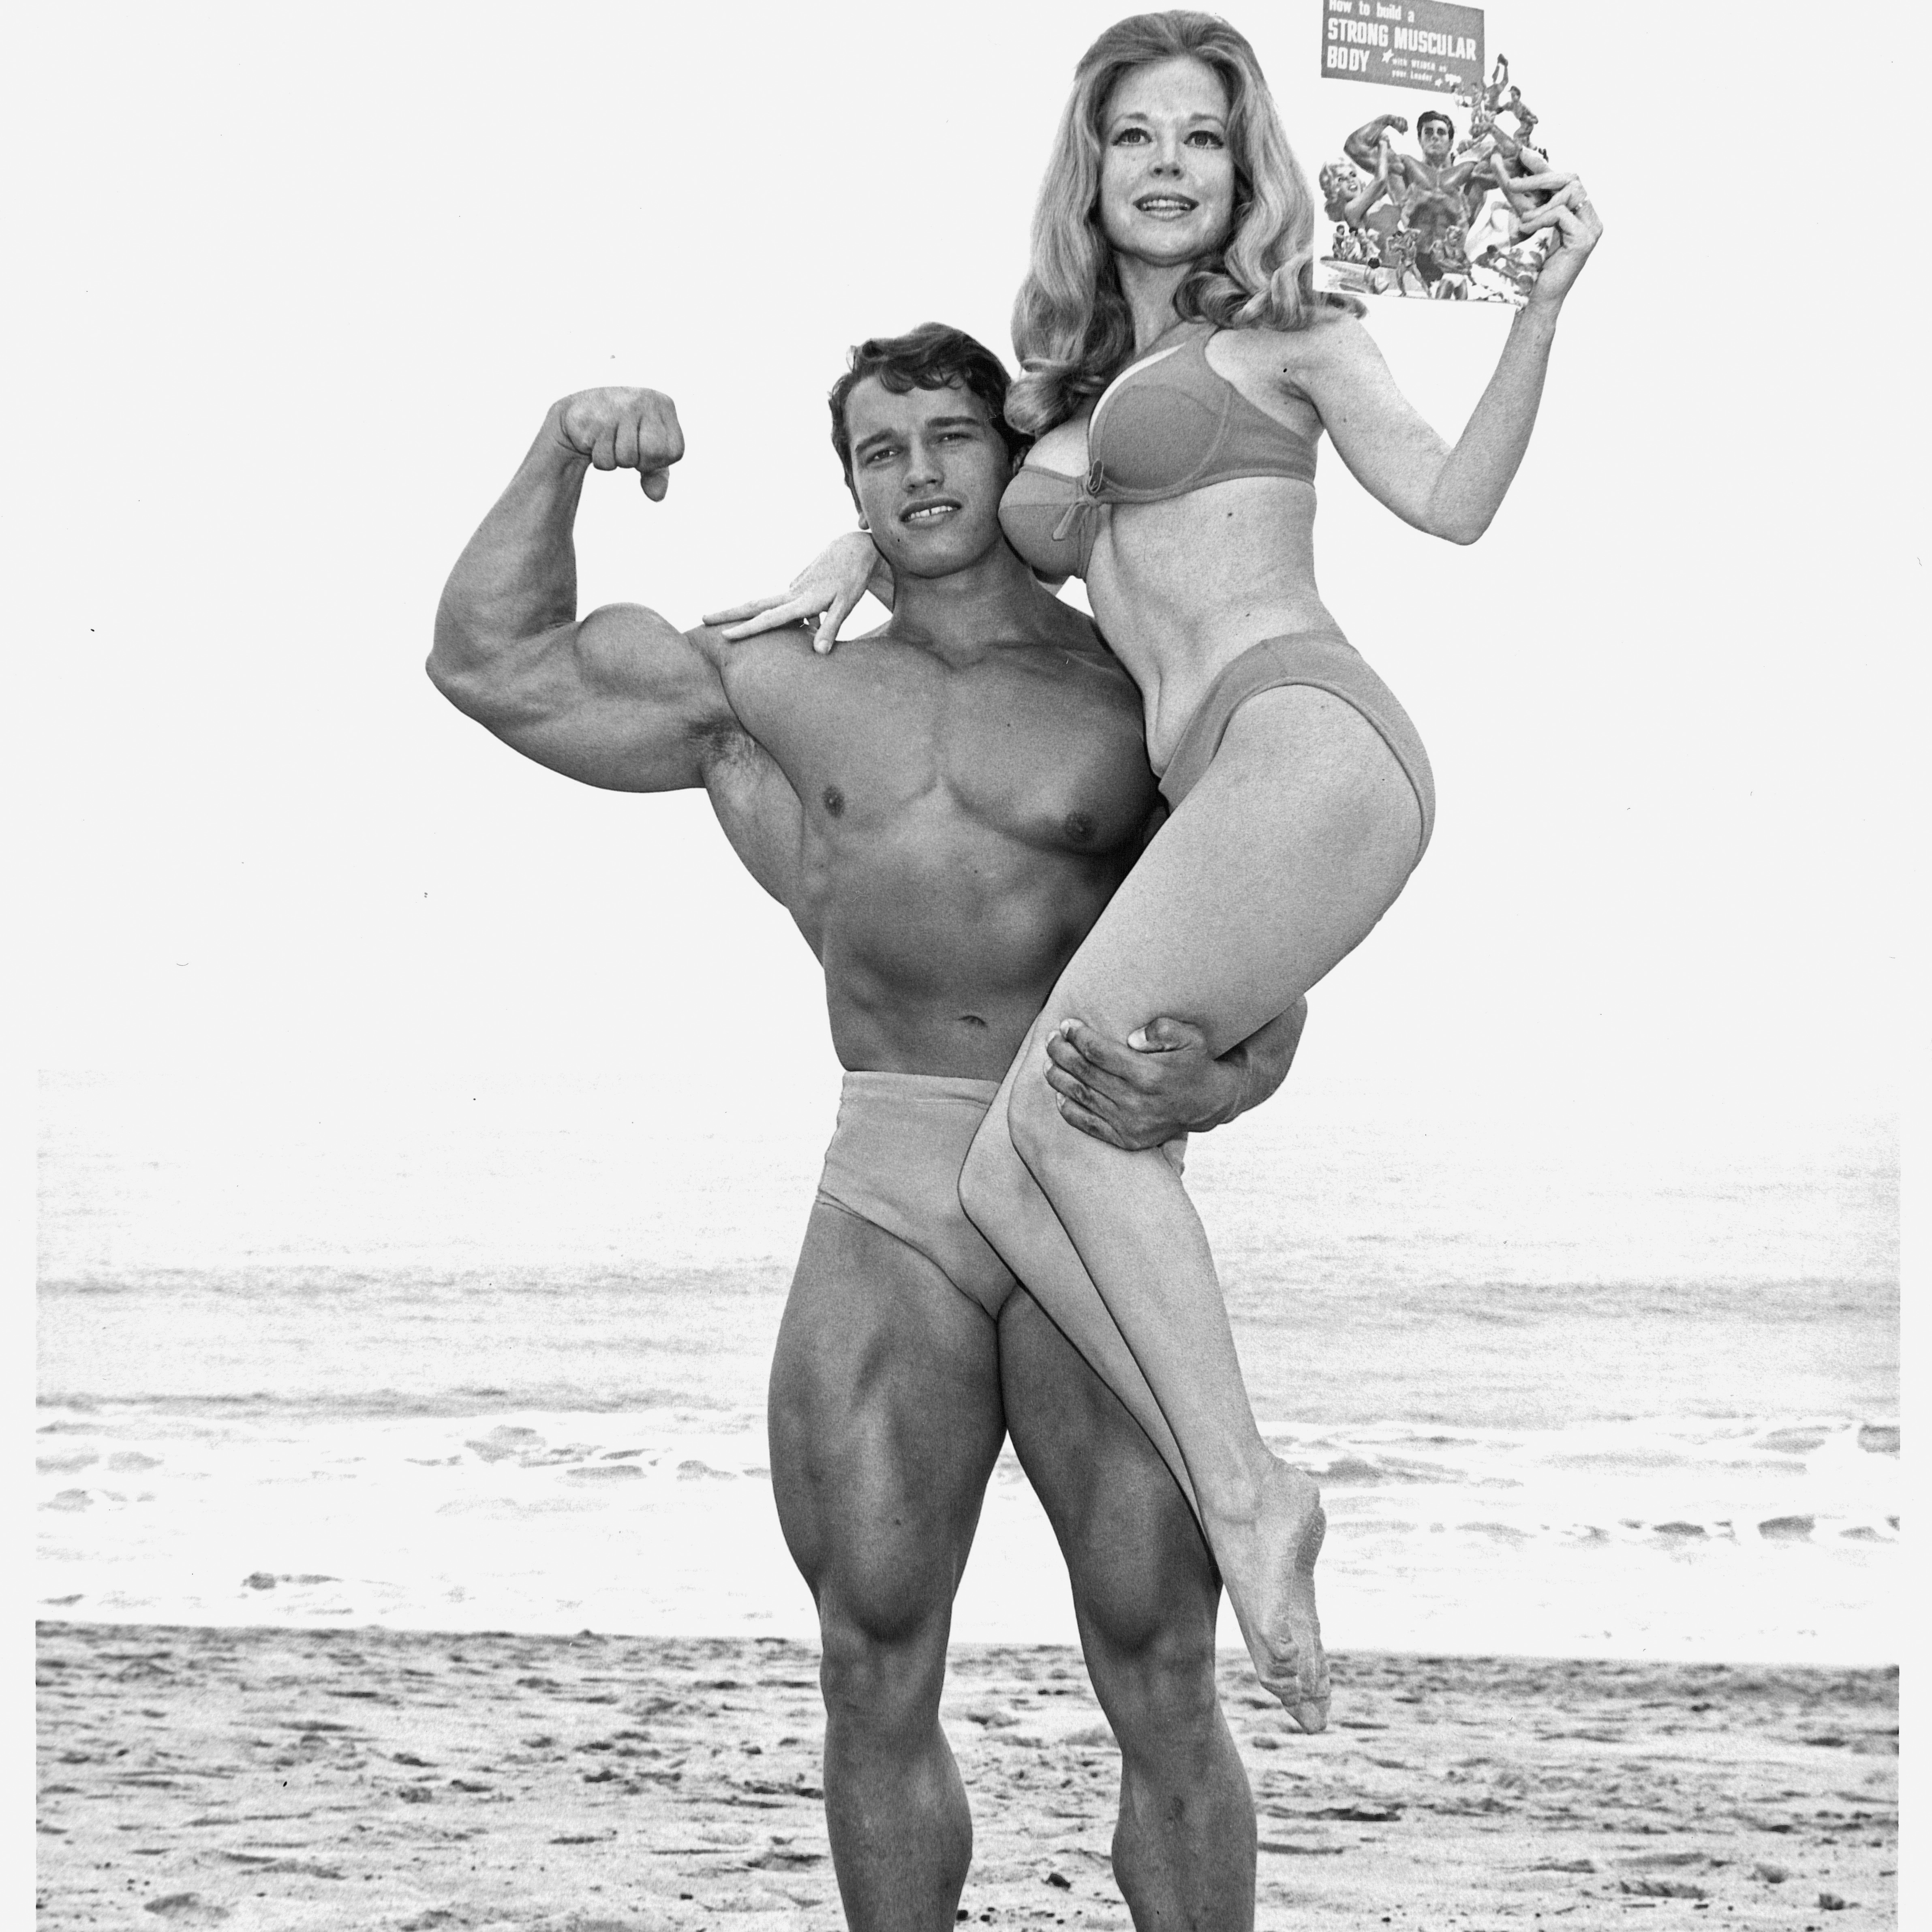 Joe Weider's wife, Betty, and Schwarzenegger often posed for ads in his magazines. The pitch was simple: If you get muscles, you can go to the beach and pick up girls.